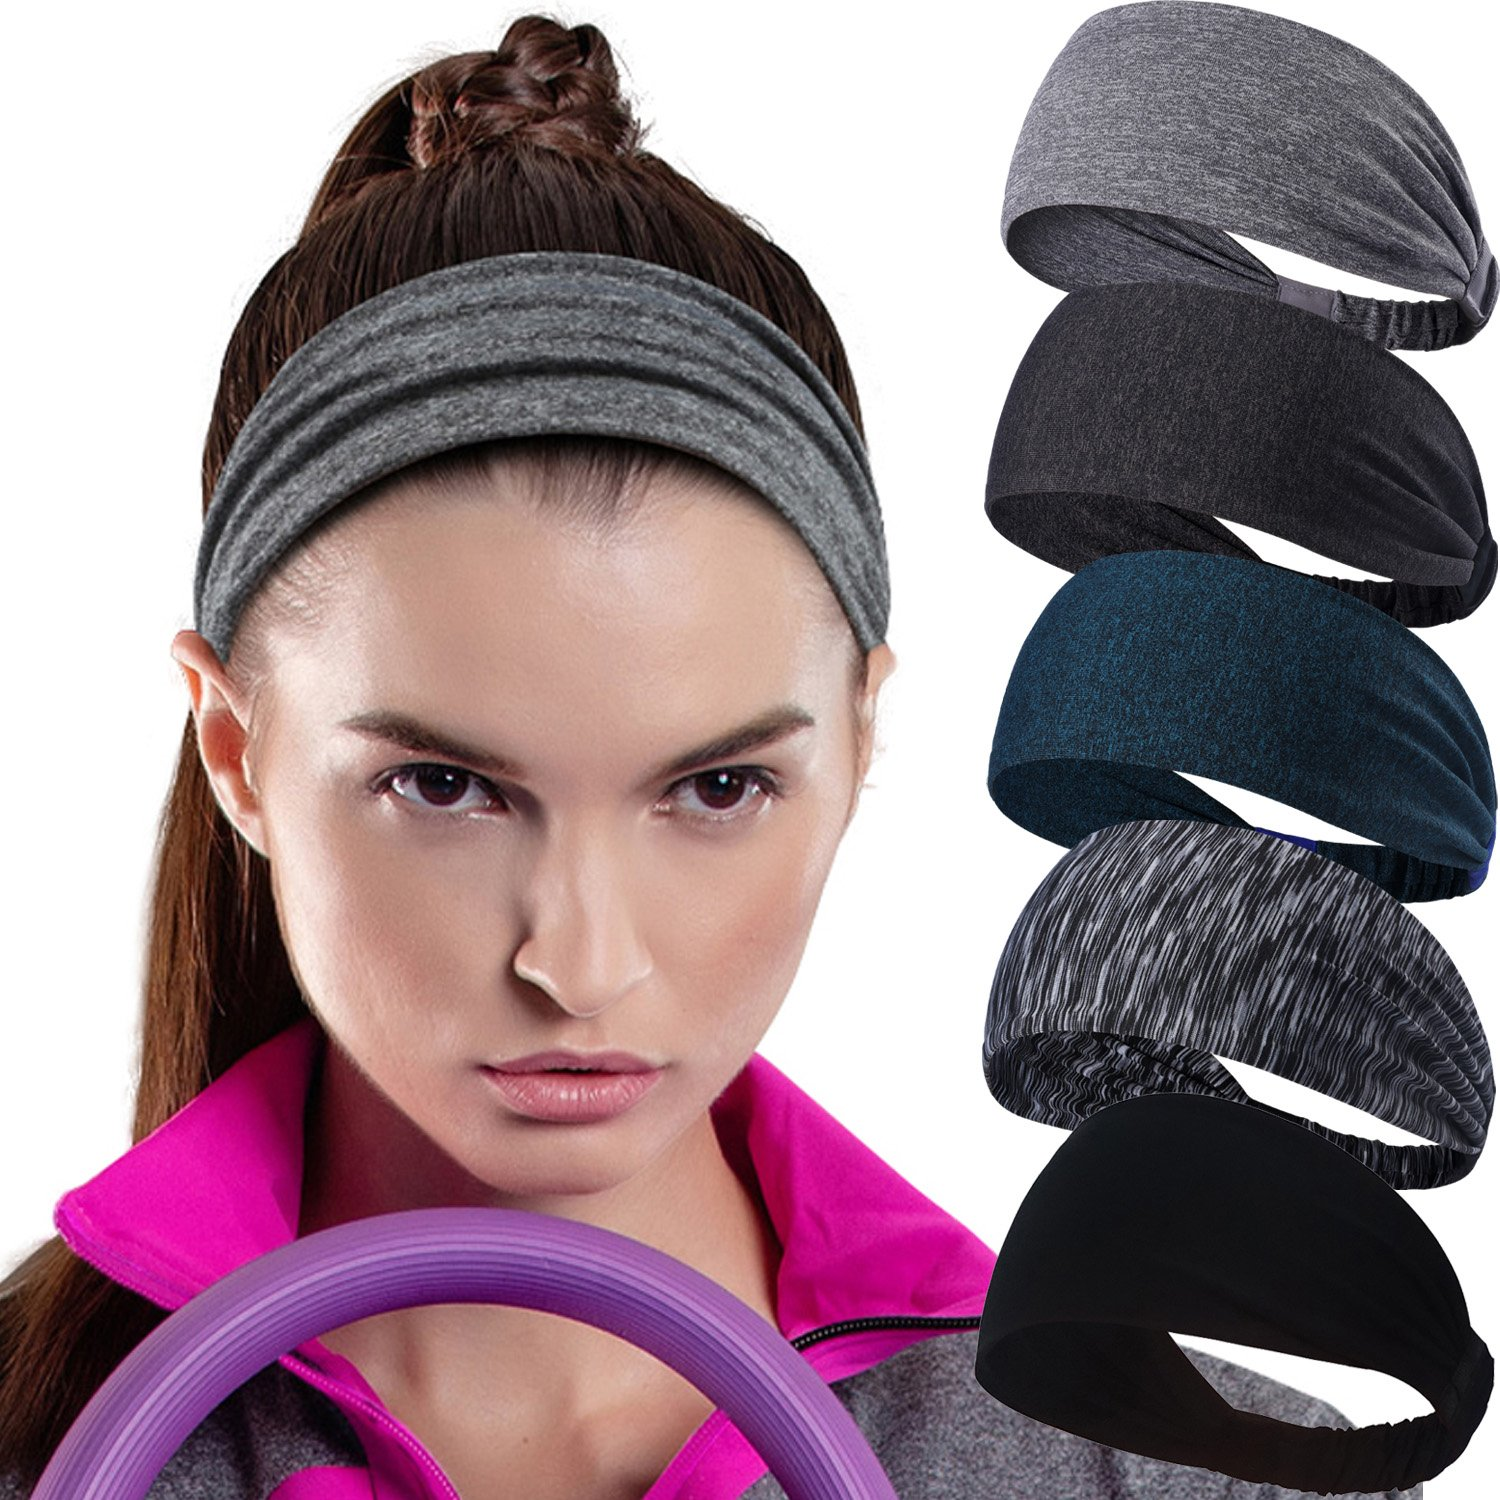 Calbeing Headband for Womens Workout Sweatband Headscarf Head wrap Hairband Stretchy Soft Hair Head Band Set Sports Fitness Exercise Tennis Running Gym Yoga Dance Set of 5 by Calbeing